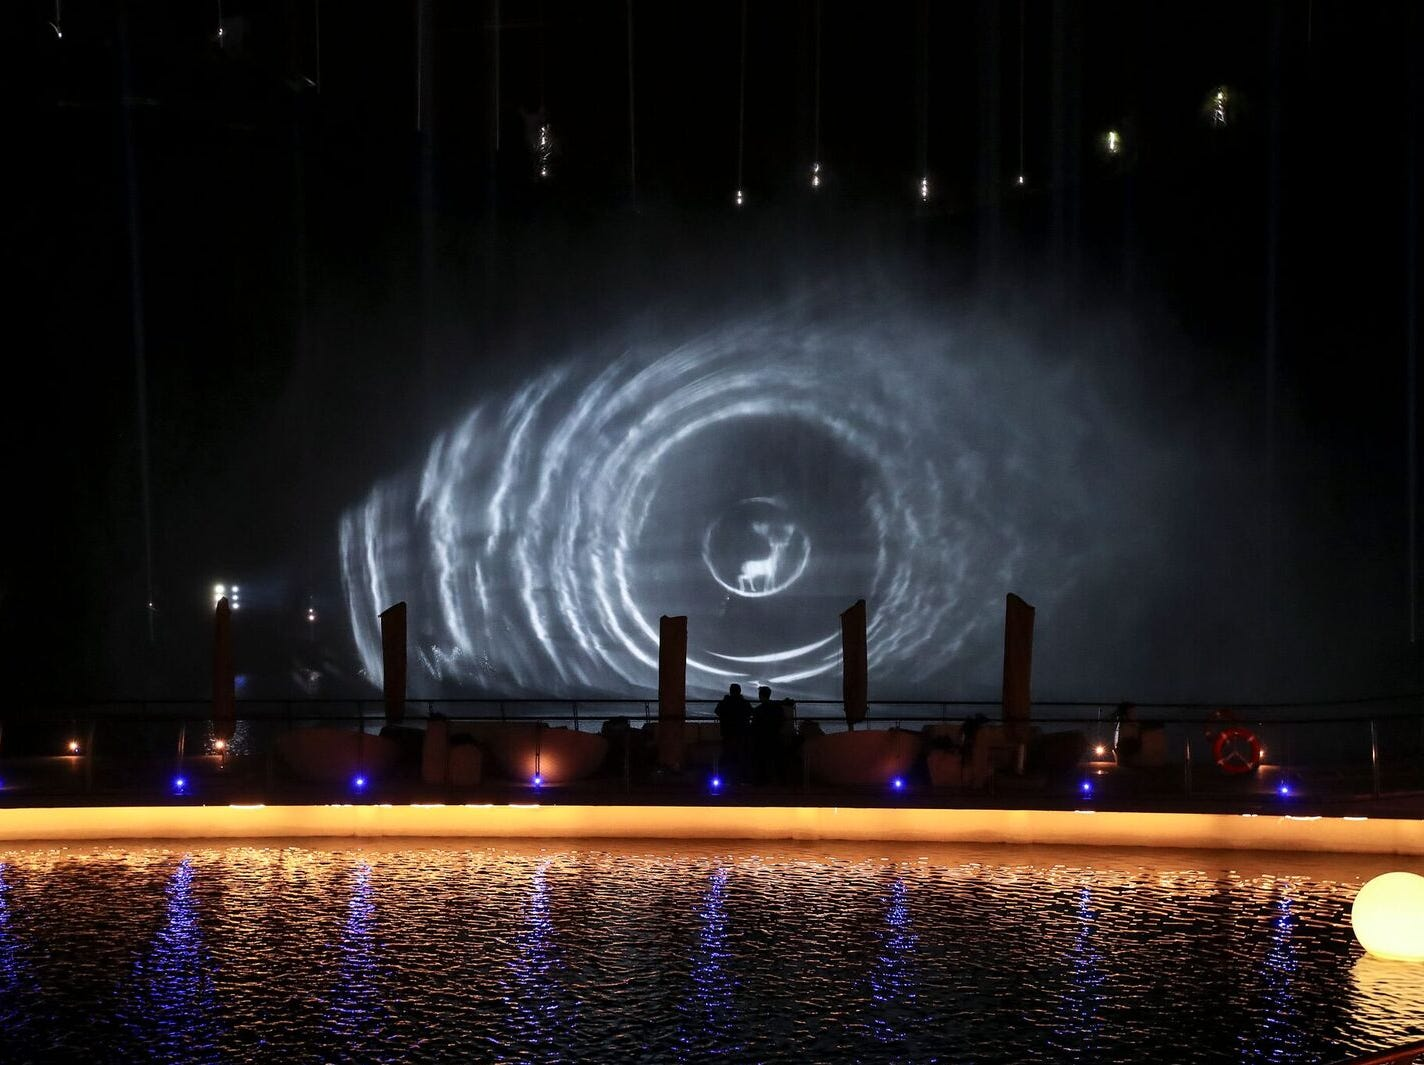 Set to music, the show includes dancing lights from all sides of the quarry in addition to coordinated fountain performances.